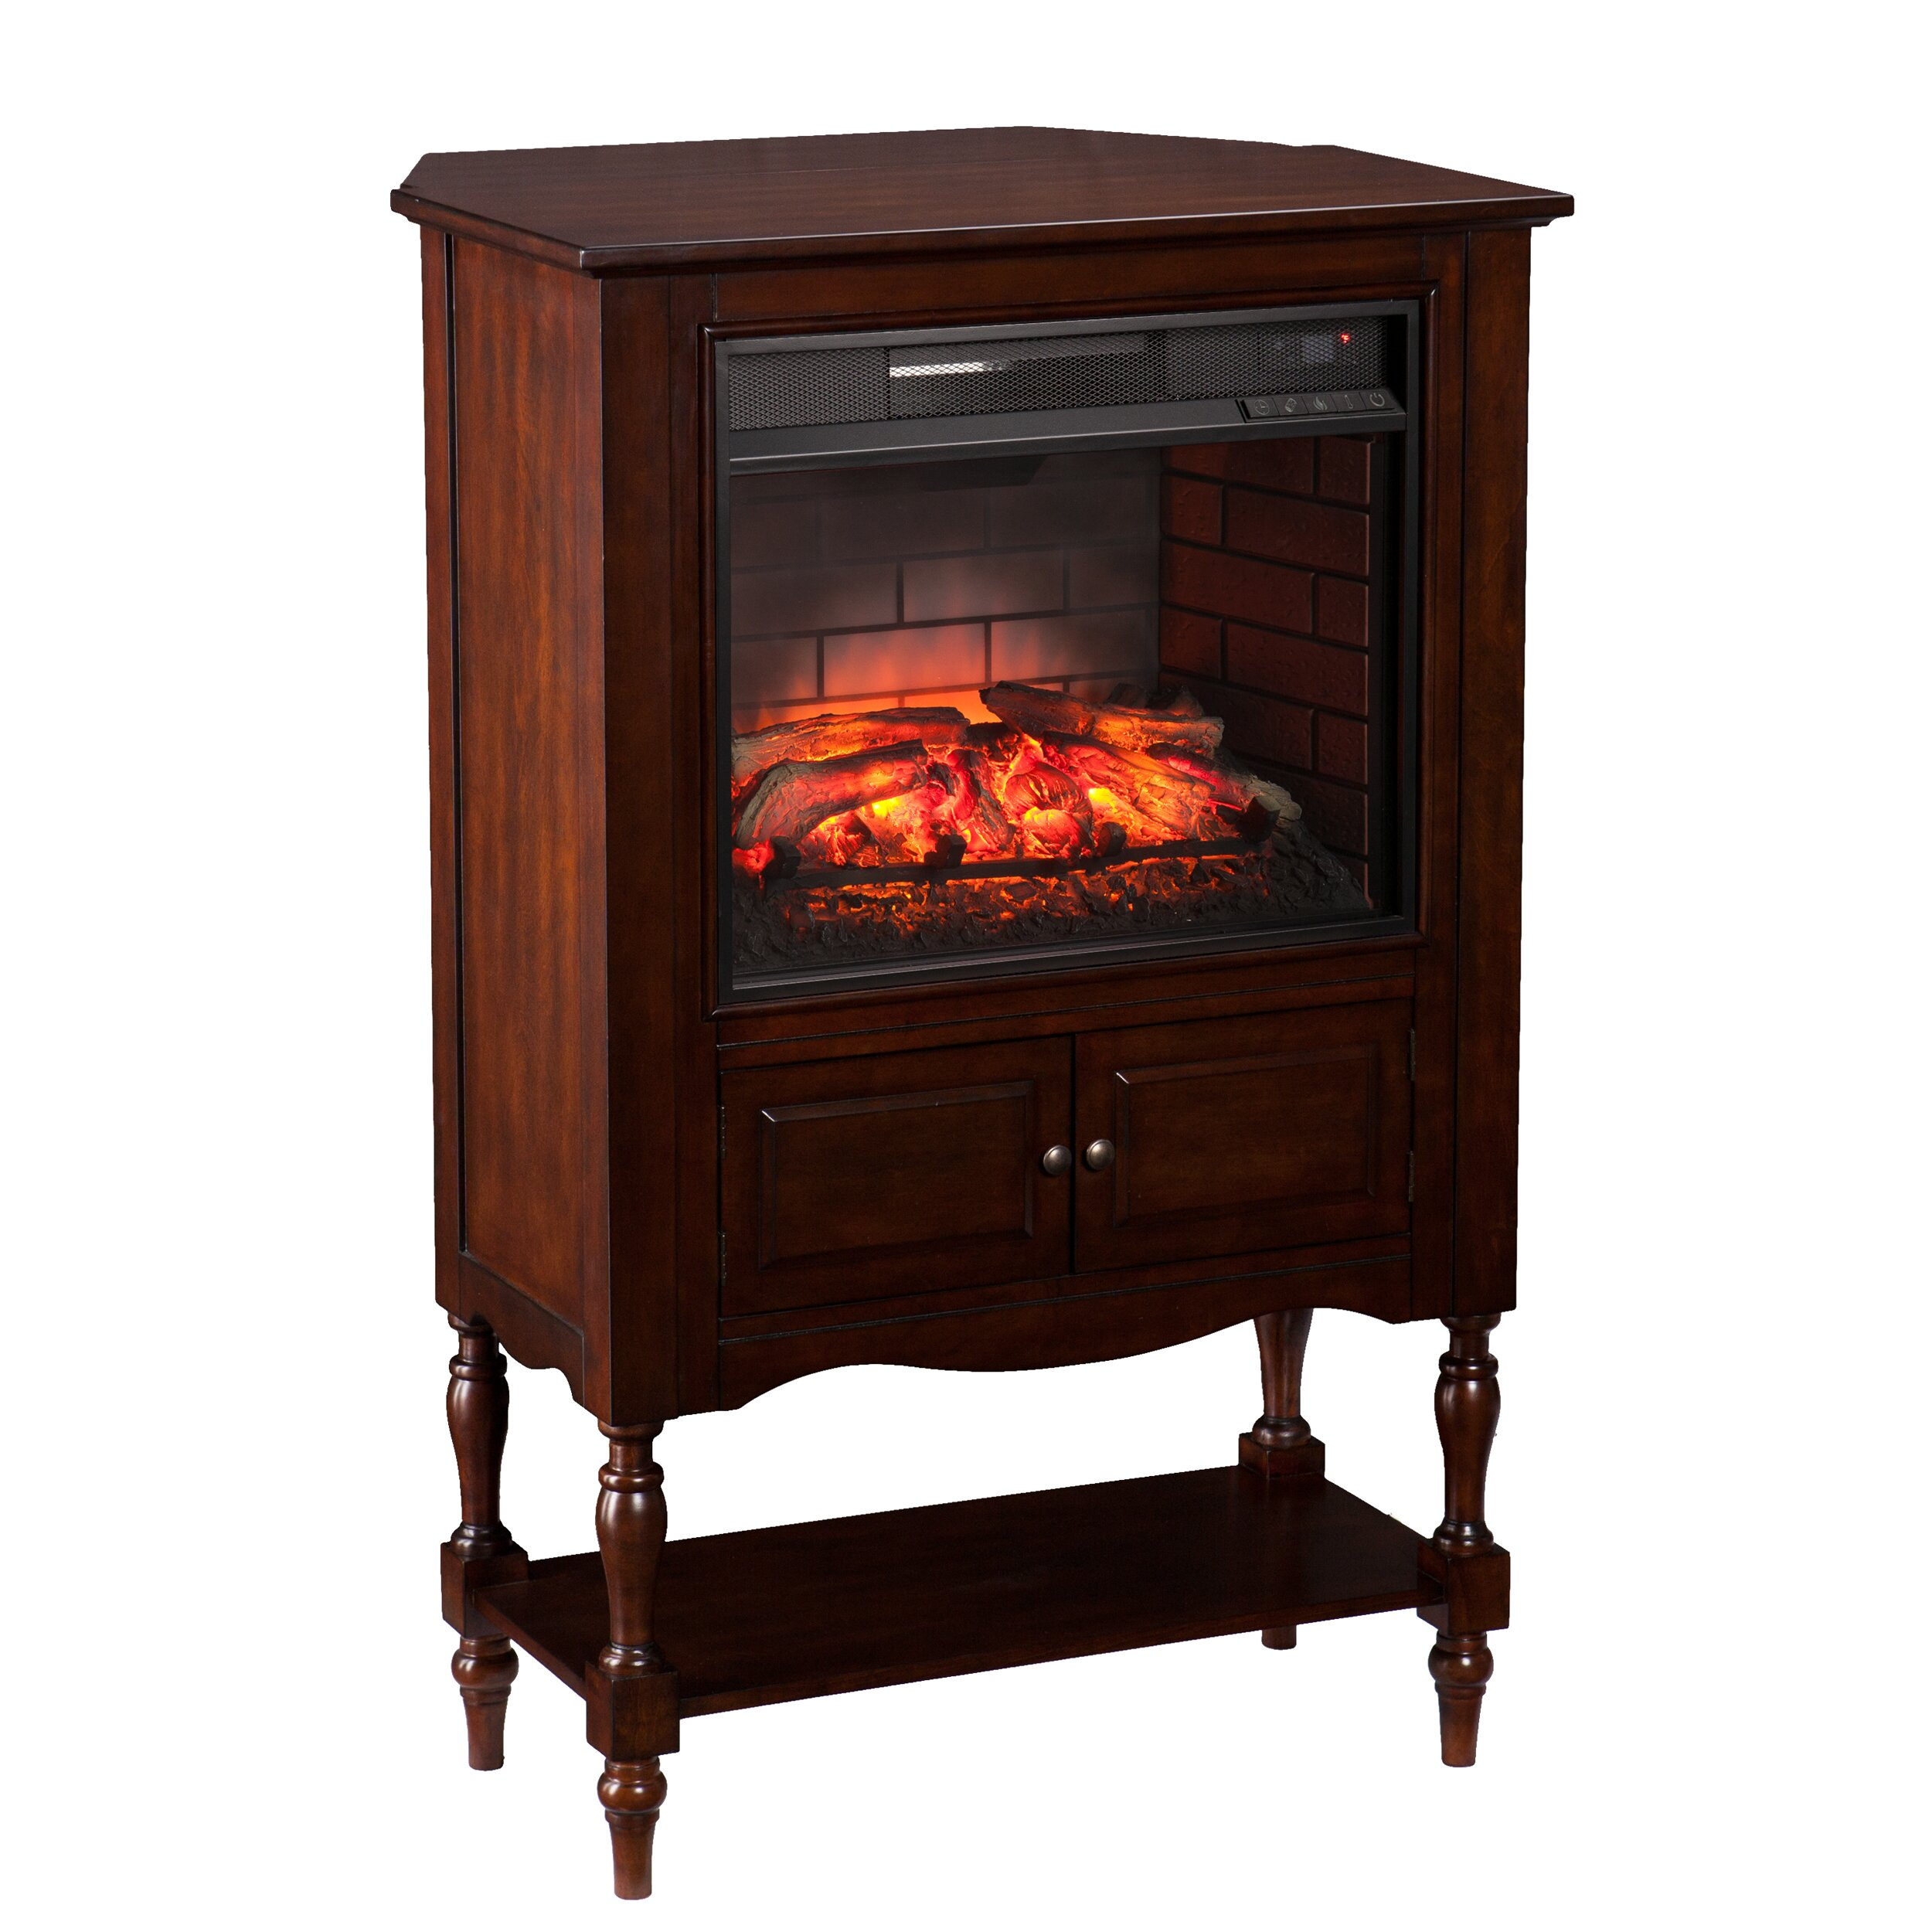 Wildon Home Wexford Antique Infrared Electric Fireplace Reviews Wayfair